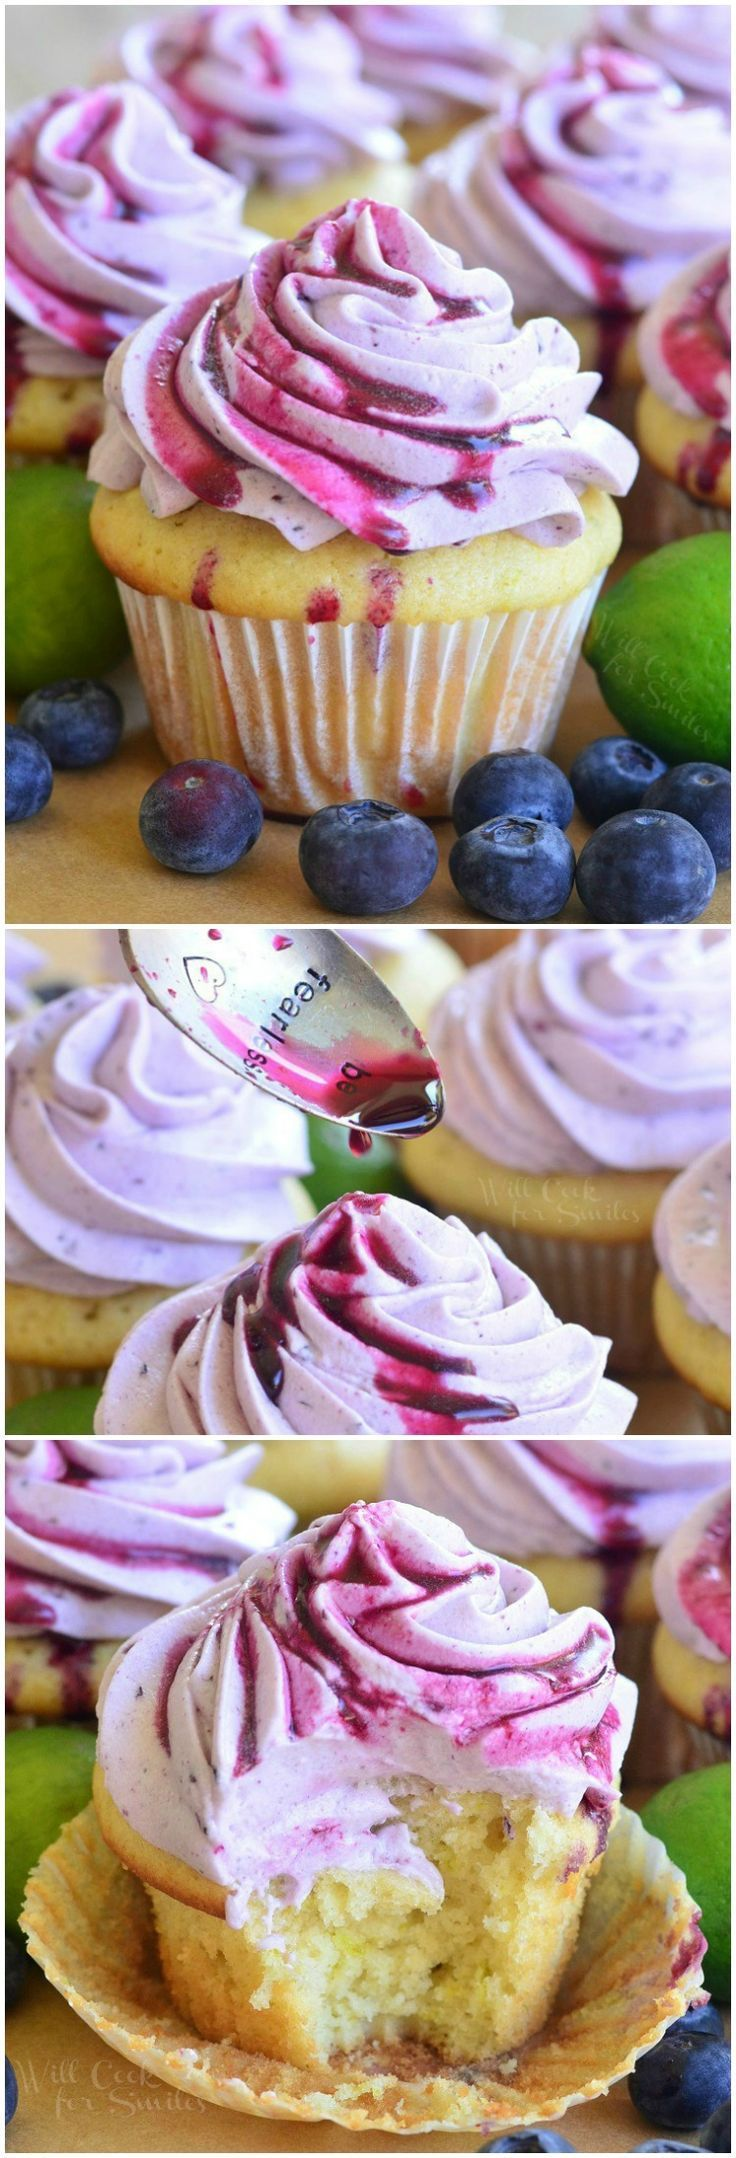 Blueberry Key Lime Cupcakes Key Lime Cupcakes with Fresh Blueberry Cream Cheese Frosting! from http://willcookforsmiles.com #dessert #spring